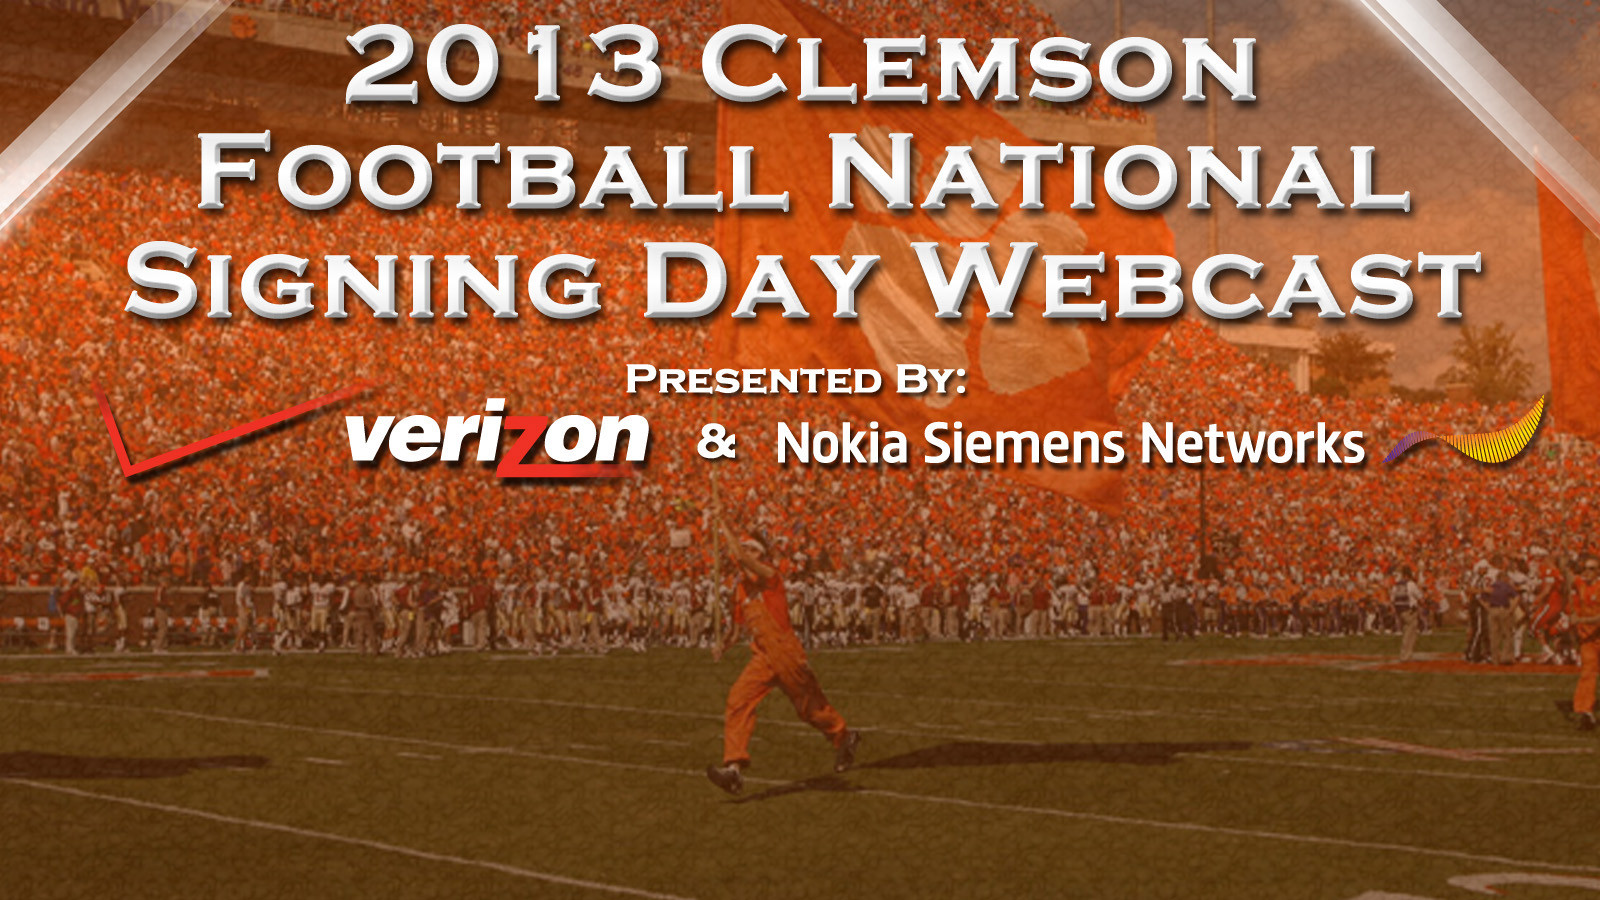 Clemson Athletics to Broadcast Free Live Webcast on Signing Day